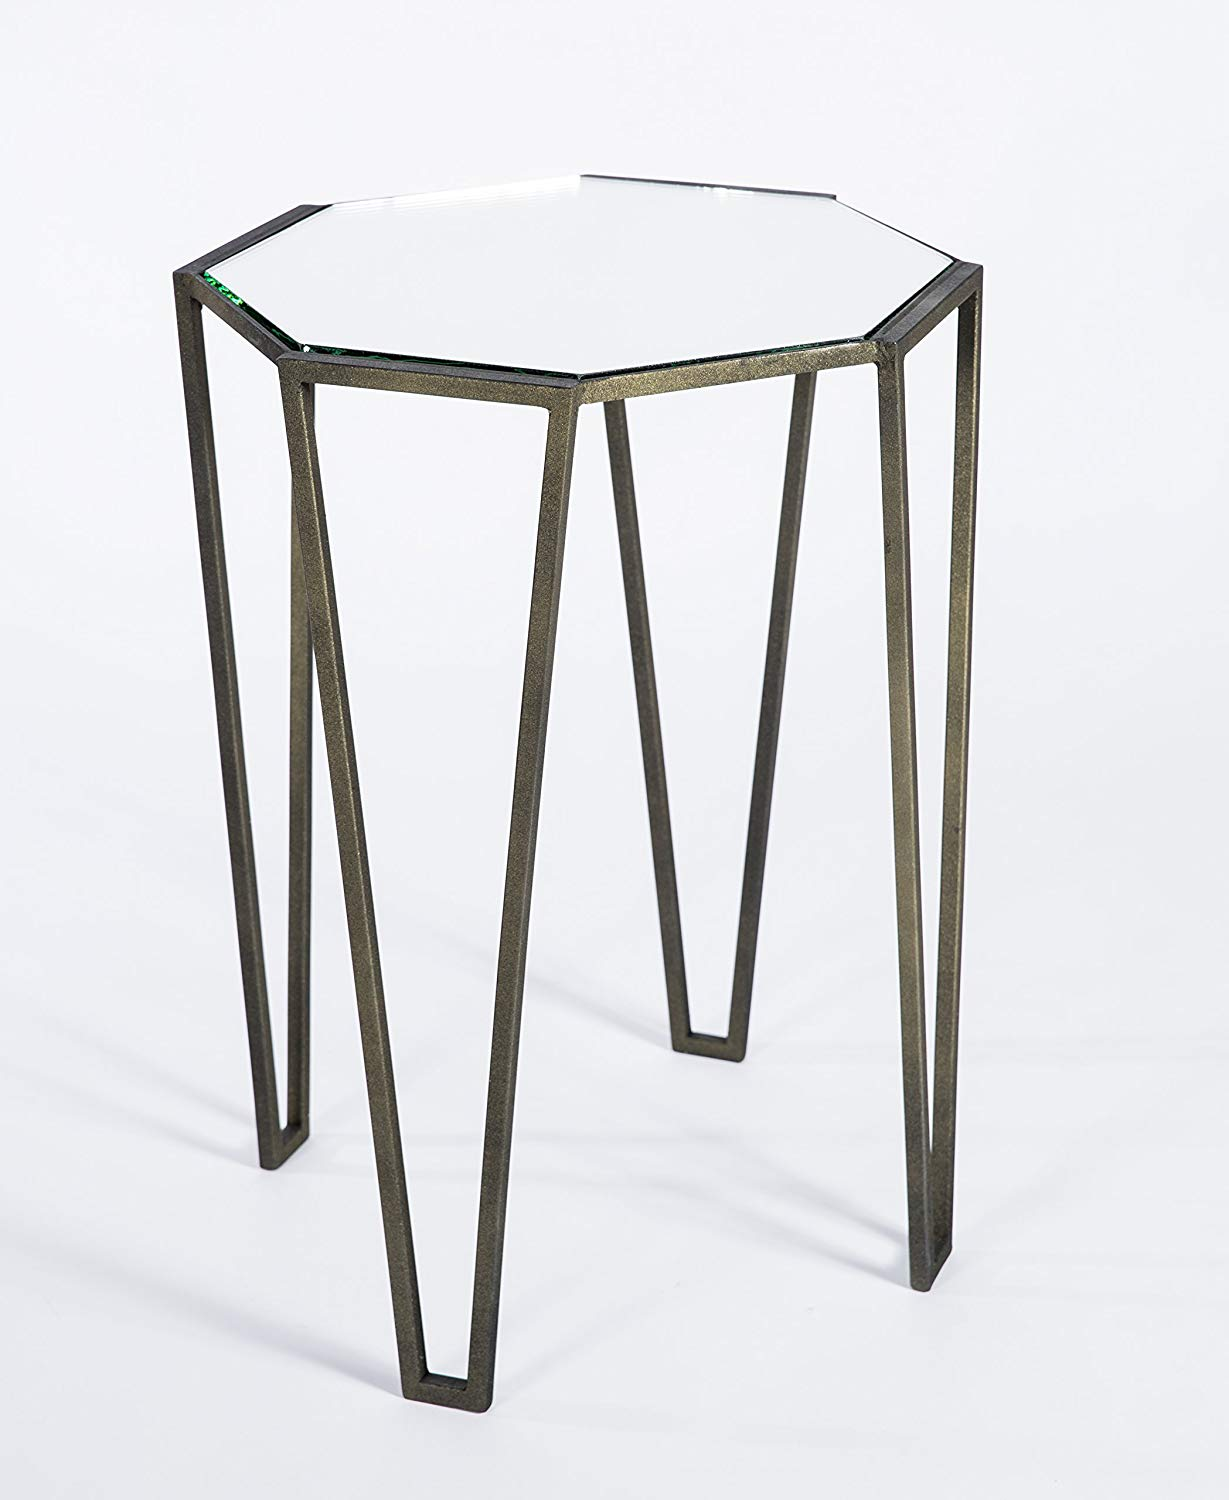 knox and harrison pointed leg occasional accent table antique bronze with mirrored top kitchen dining bedside ikea lobby furniture pads room linen runner pipe coffee very small